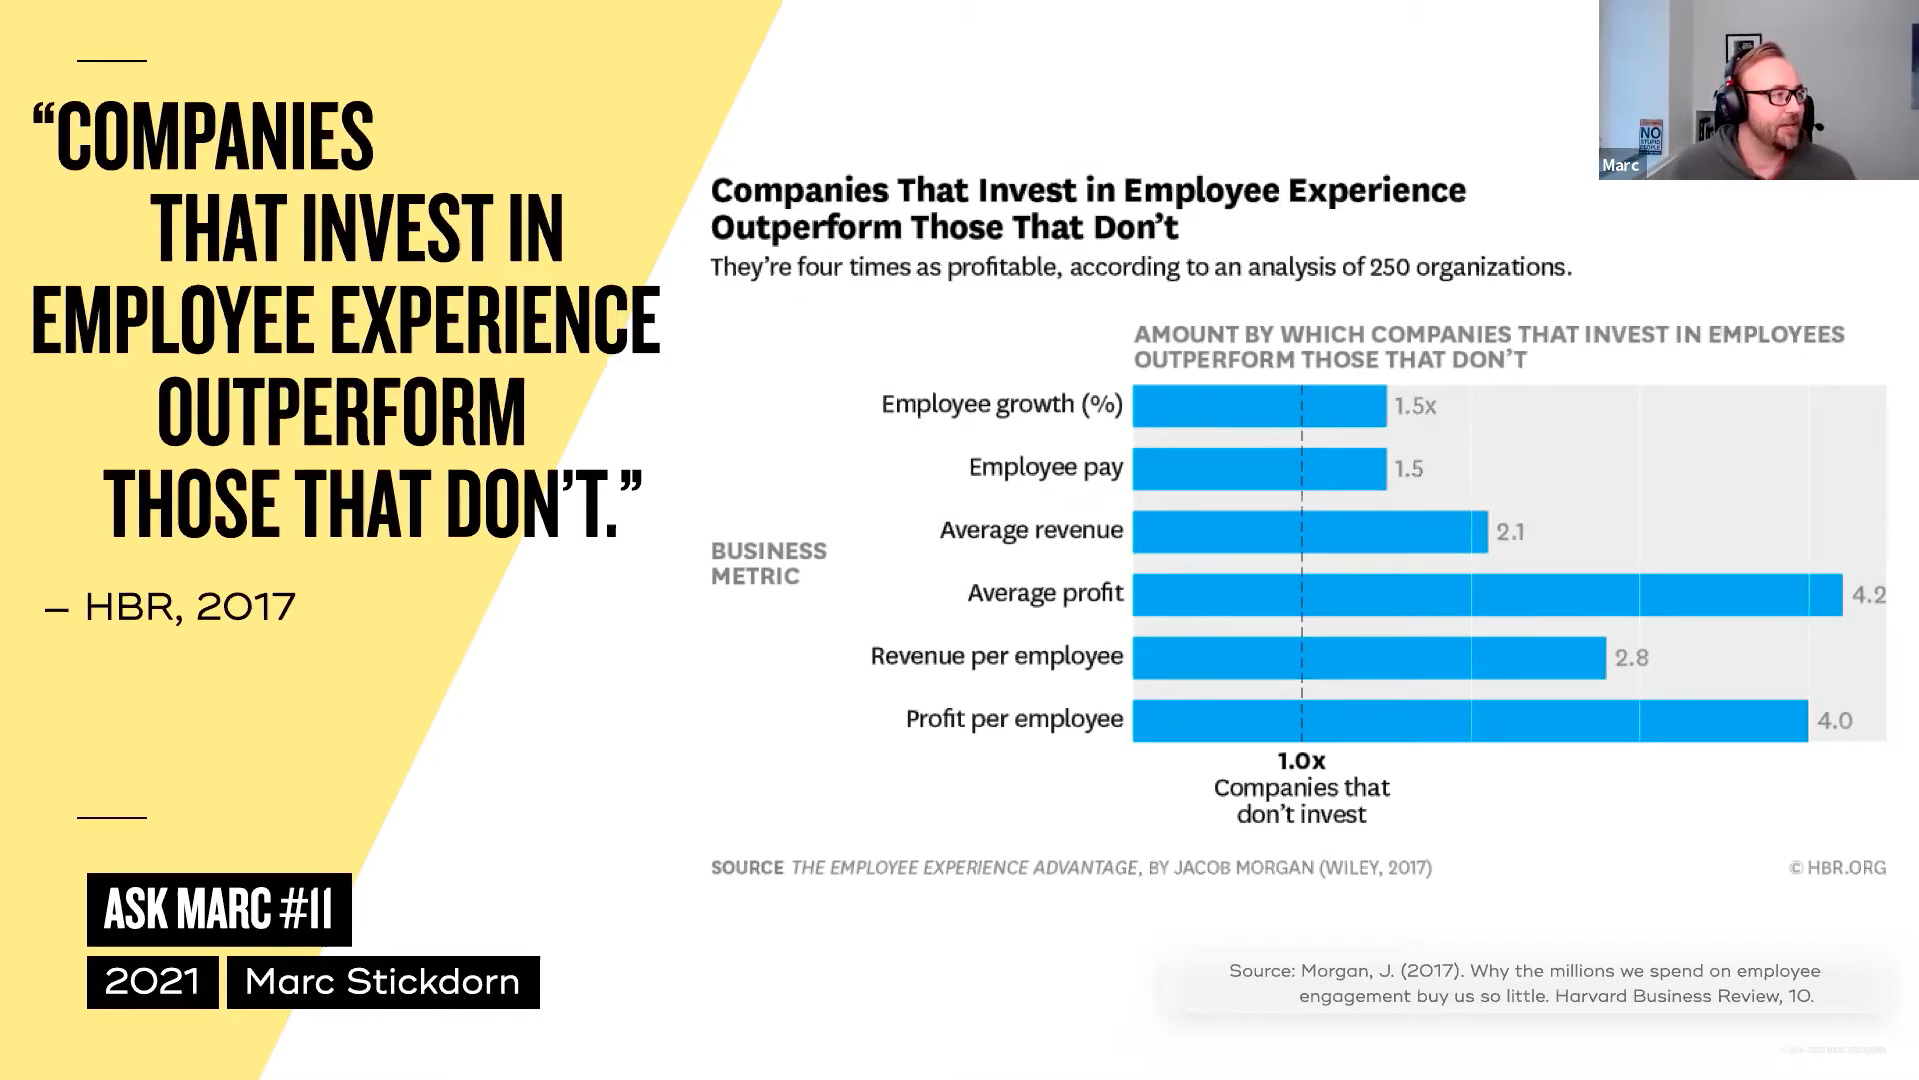 visualization of metrics in which companies outperform others that don't invest in employee experience